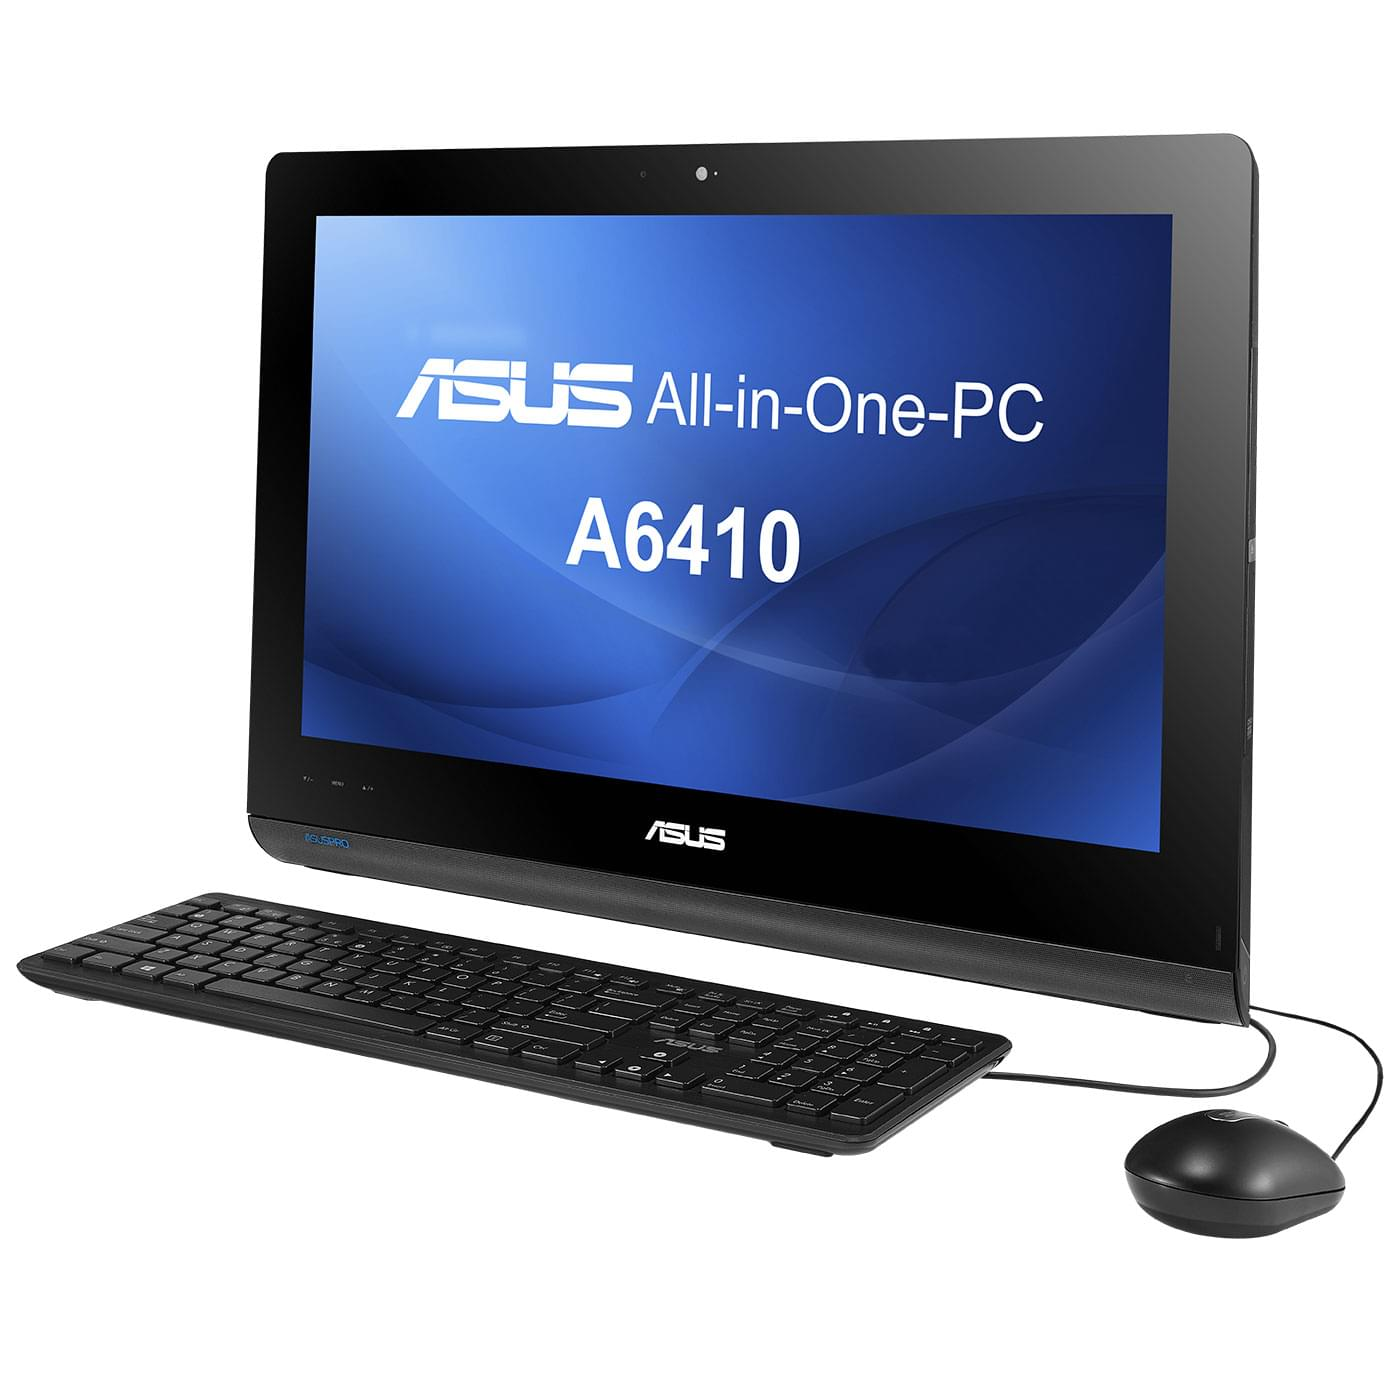 Asus A6410-BC046T - All-In-One PC Asus - Cybertek.fr - 0